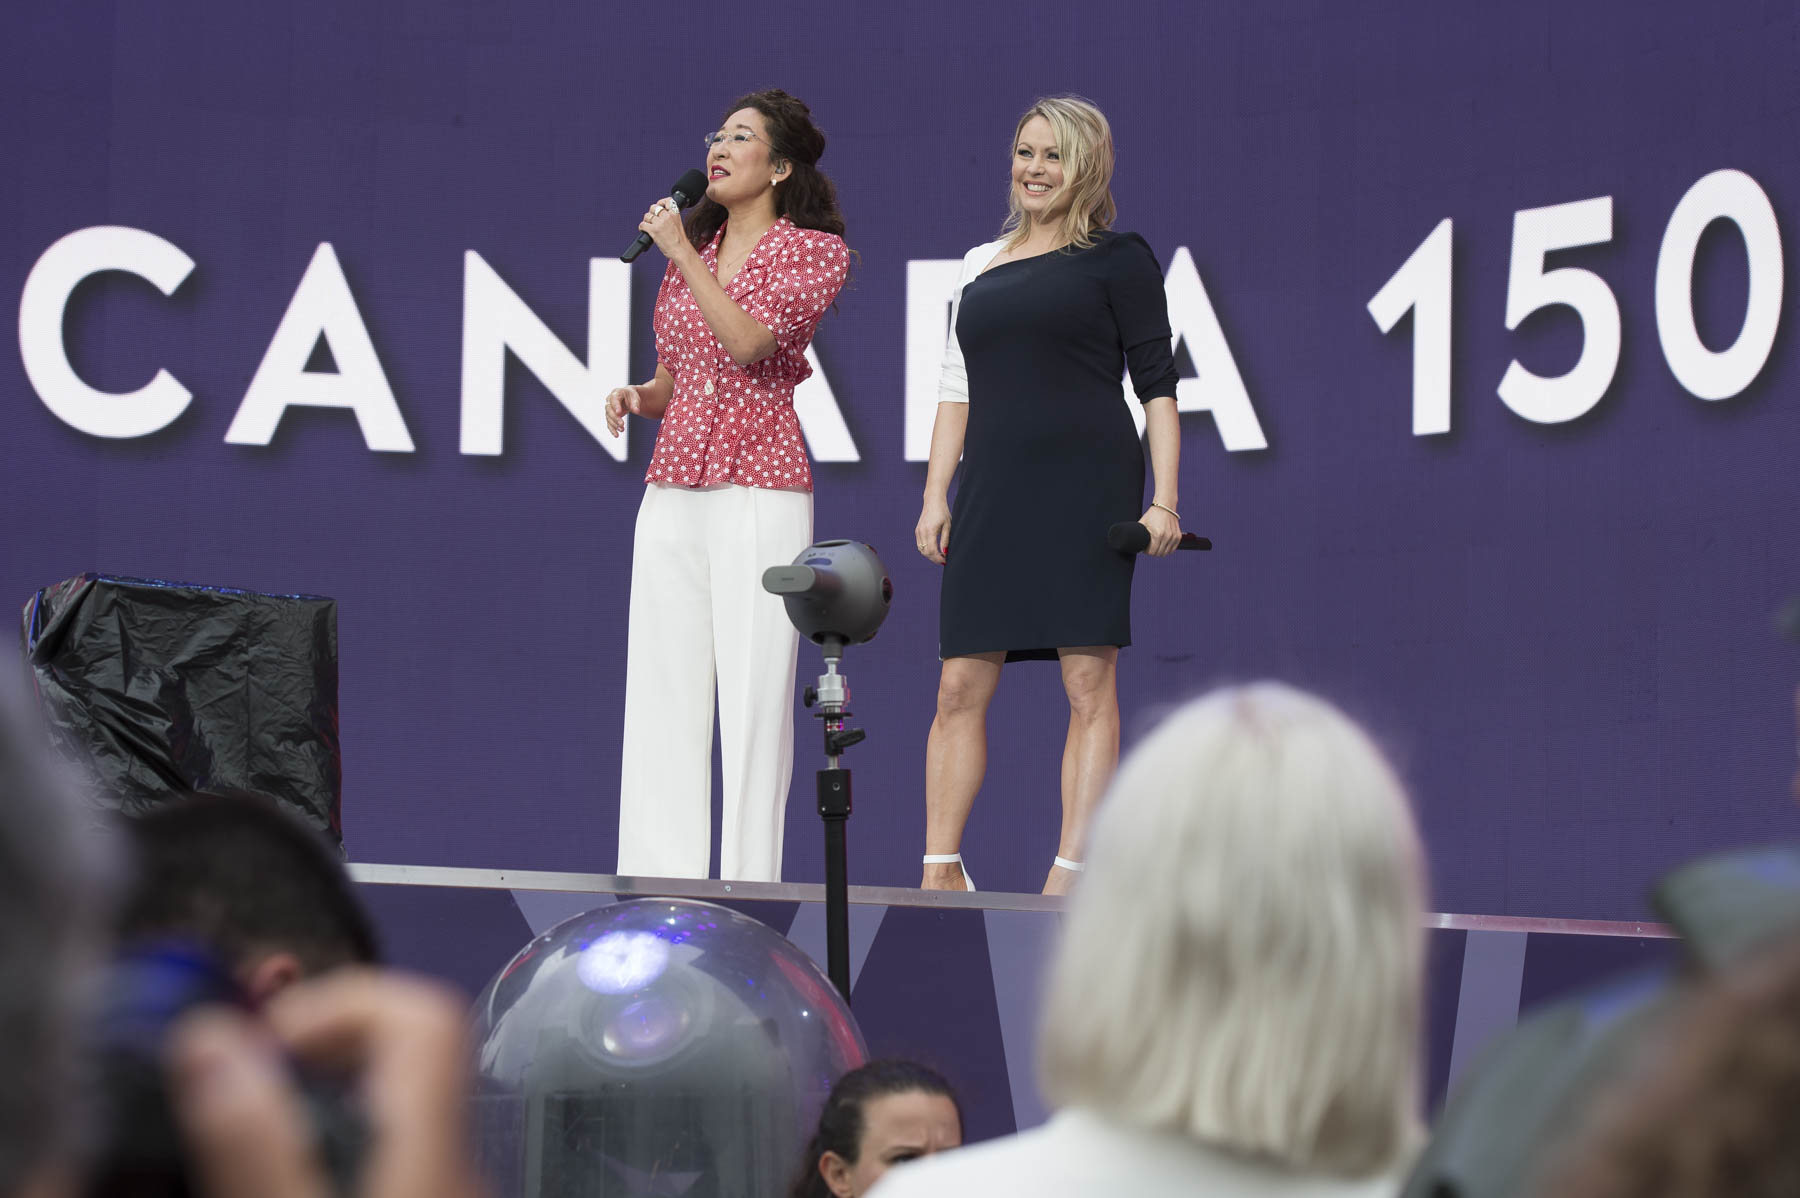 Sandra Oh and Mitsou were the masters of ceremony for the Canada Day Noon Show.